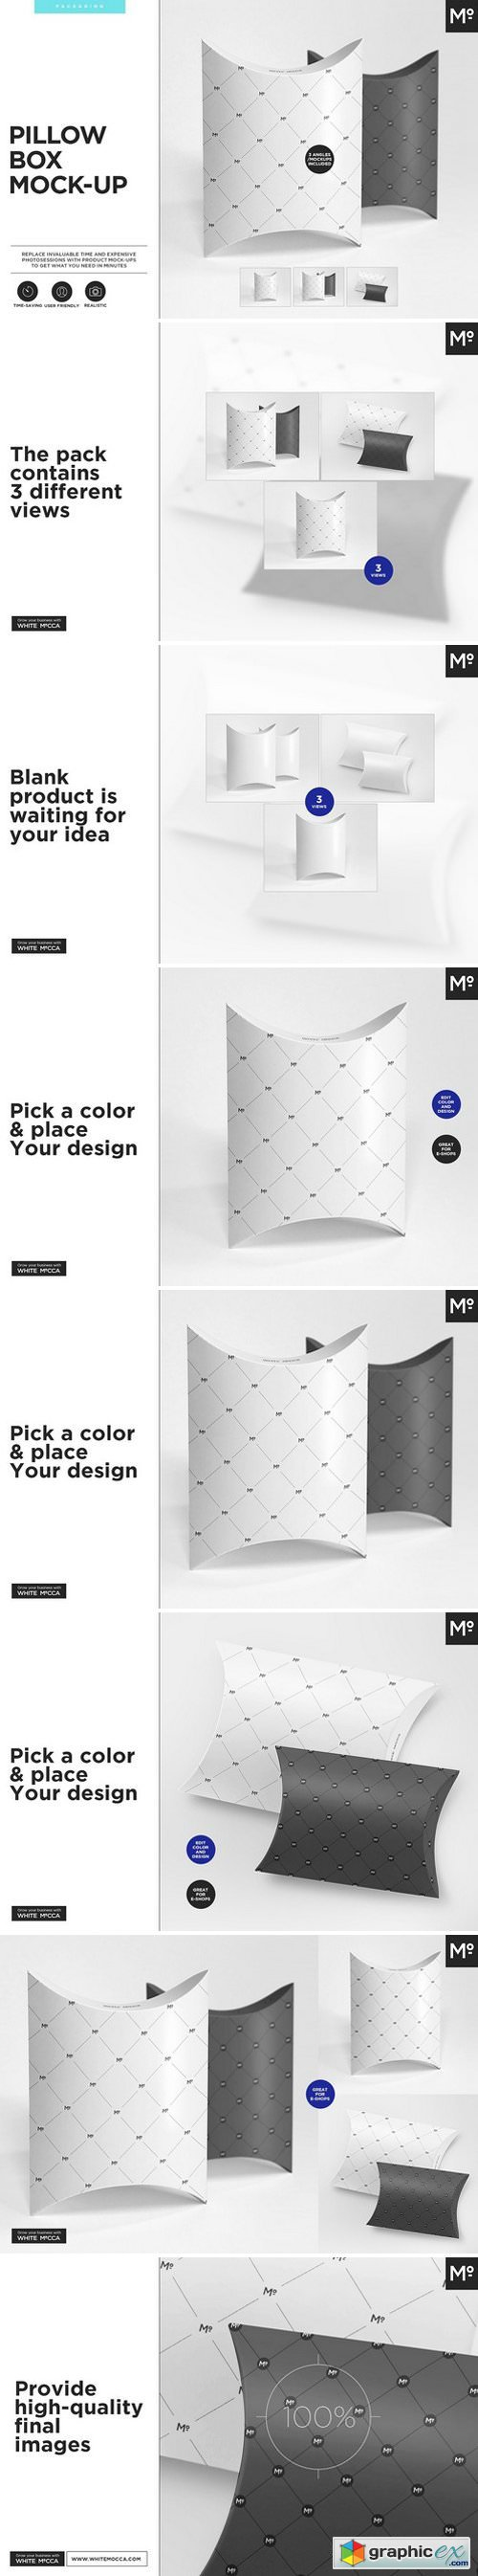 Pillow Box Mock-ups Set